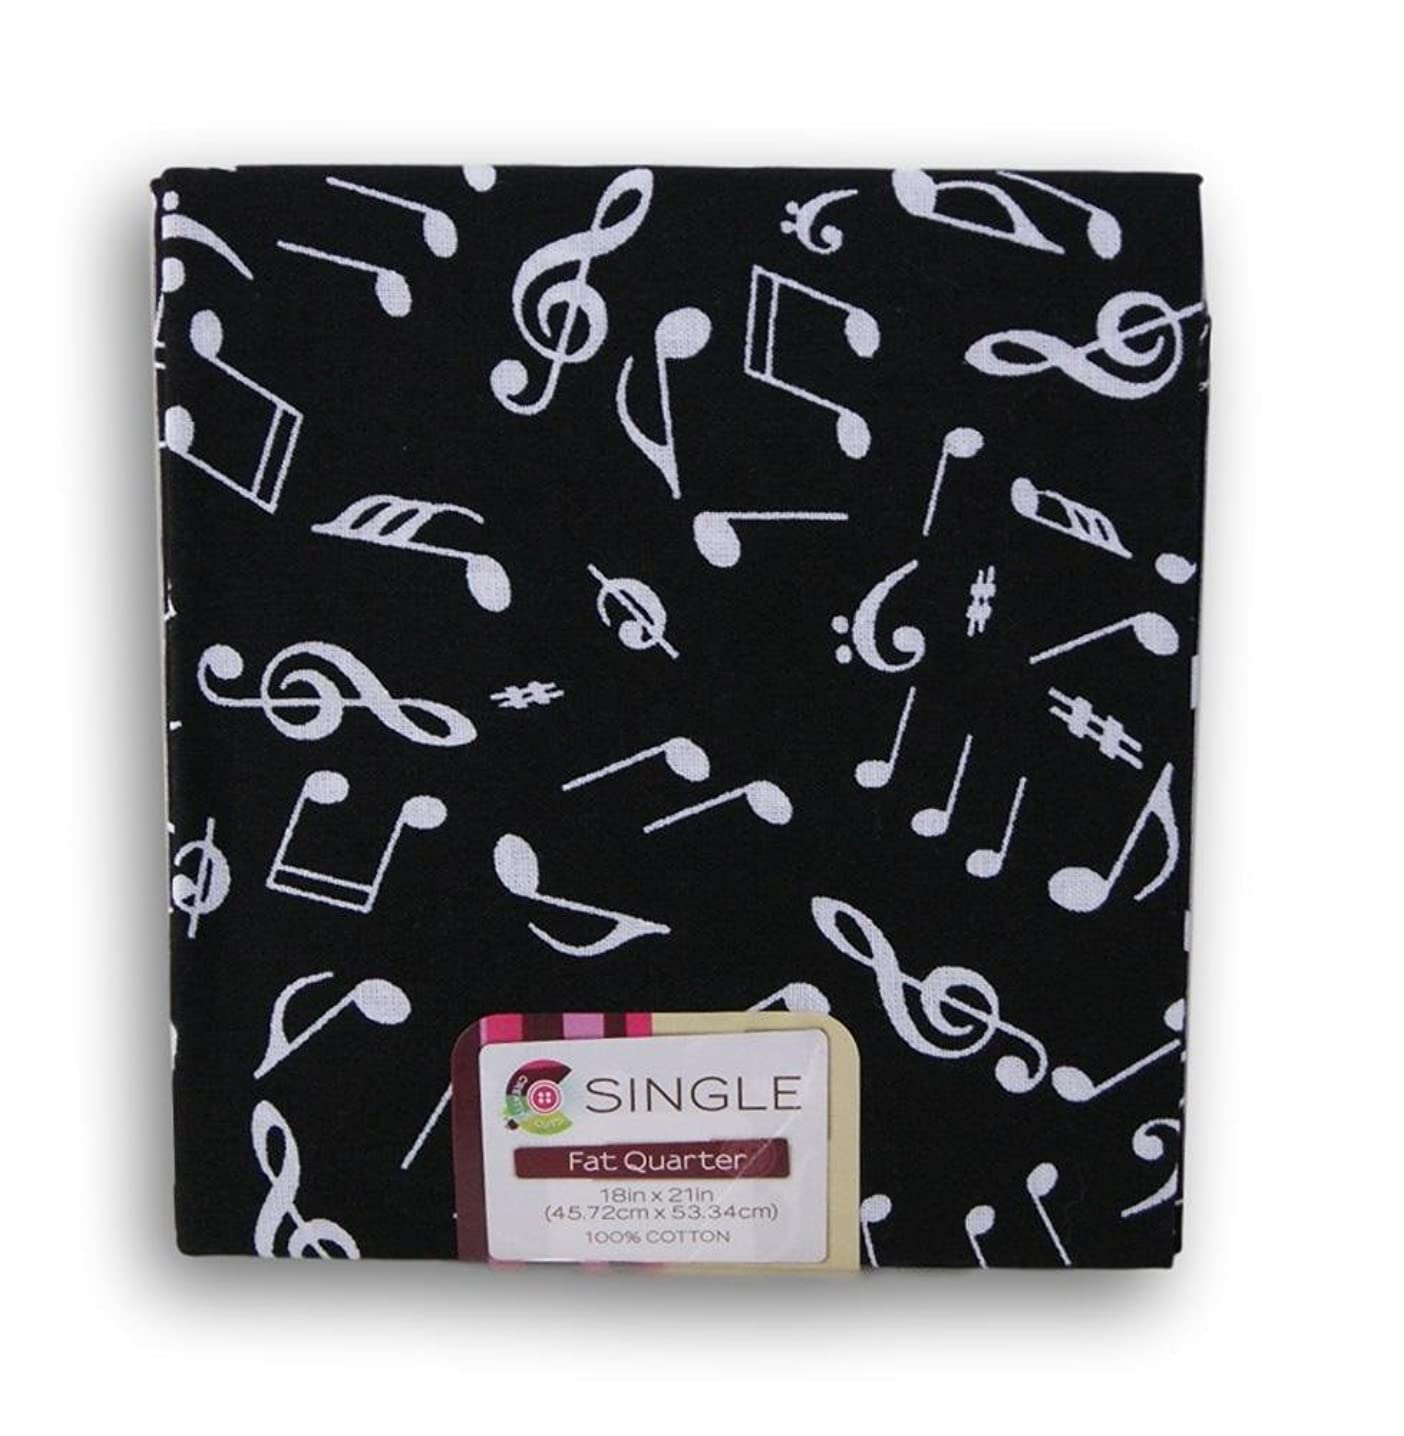 Creative Cuts Fat Quarters - White Musical Notes on Black Background feptlovaf